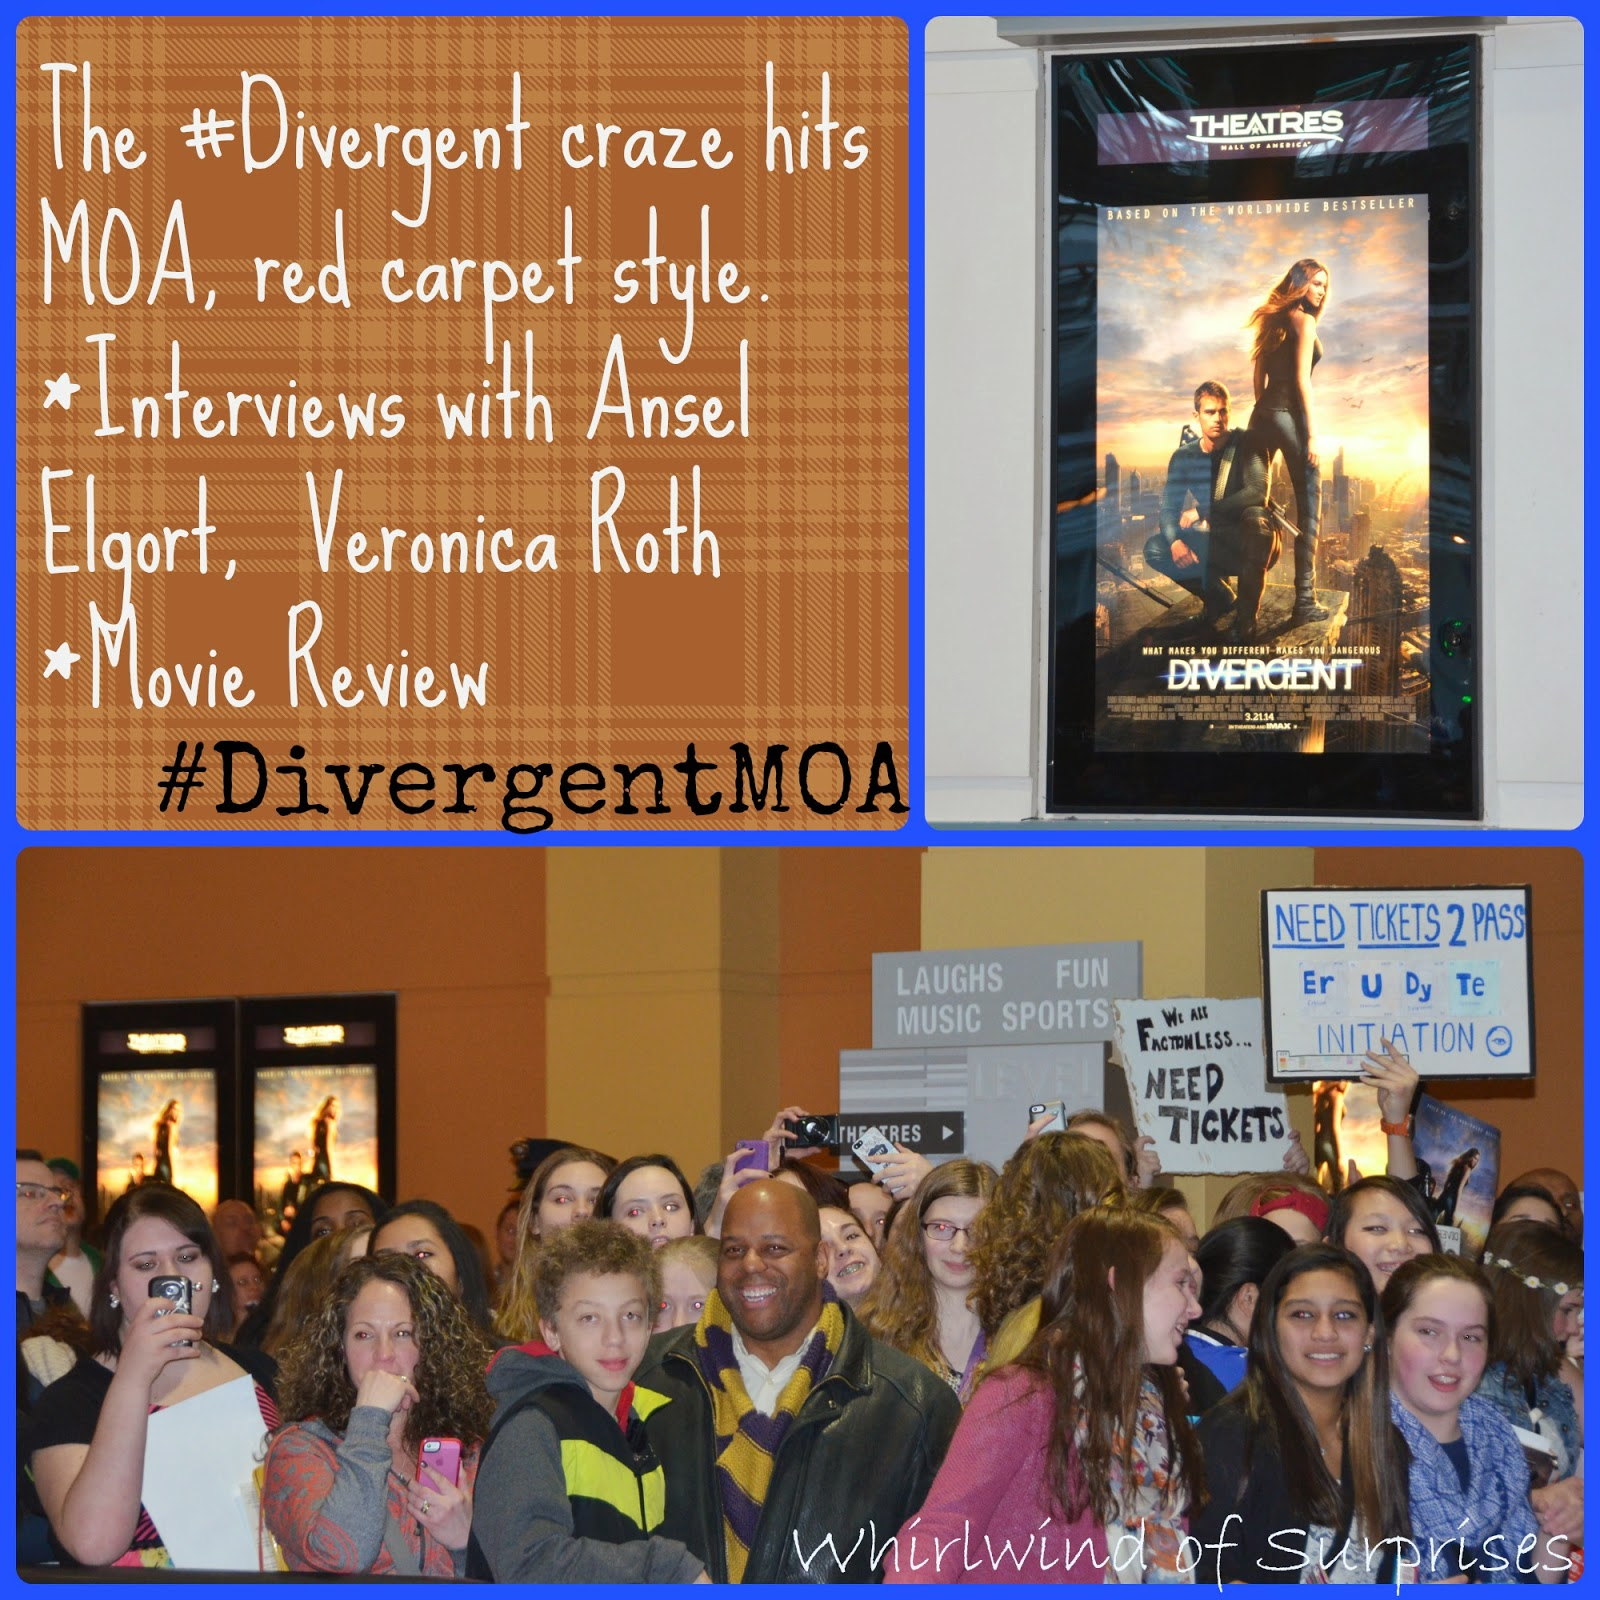 Fans at the #DivergentMOA #Divergent red carpet premiere